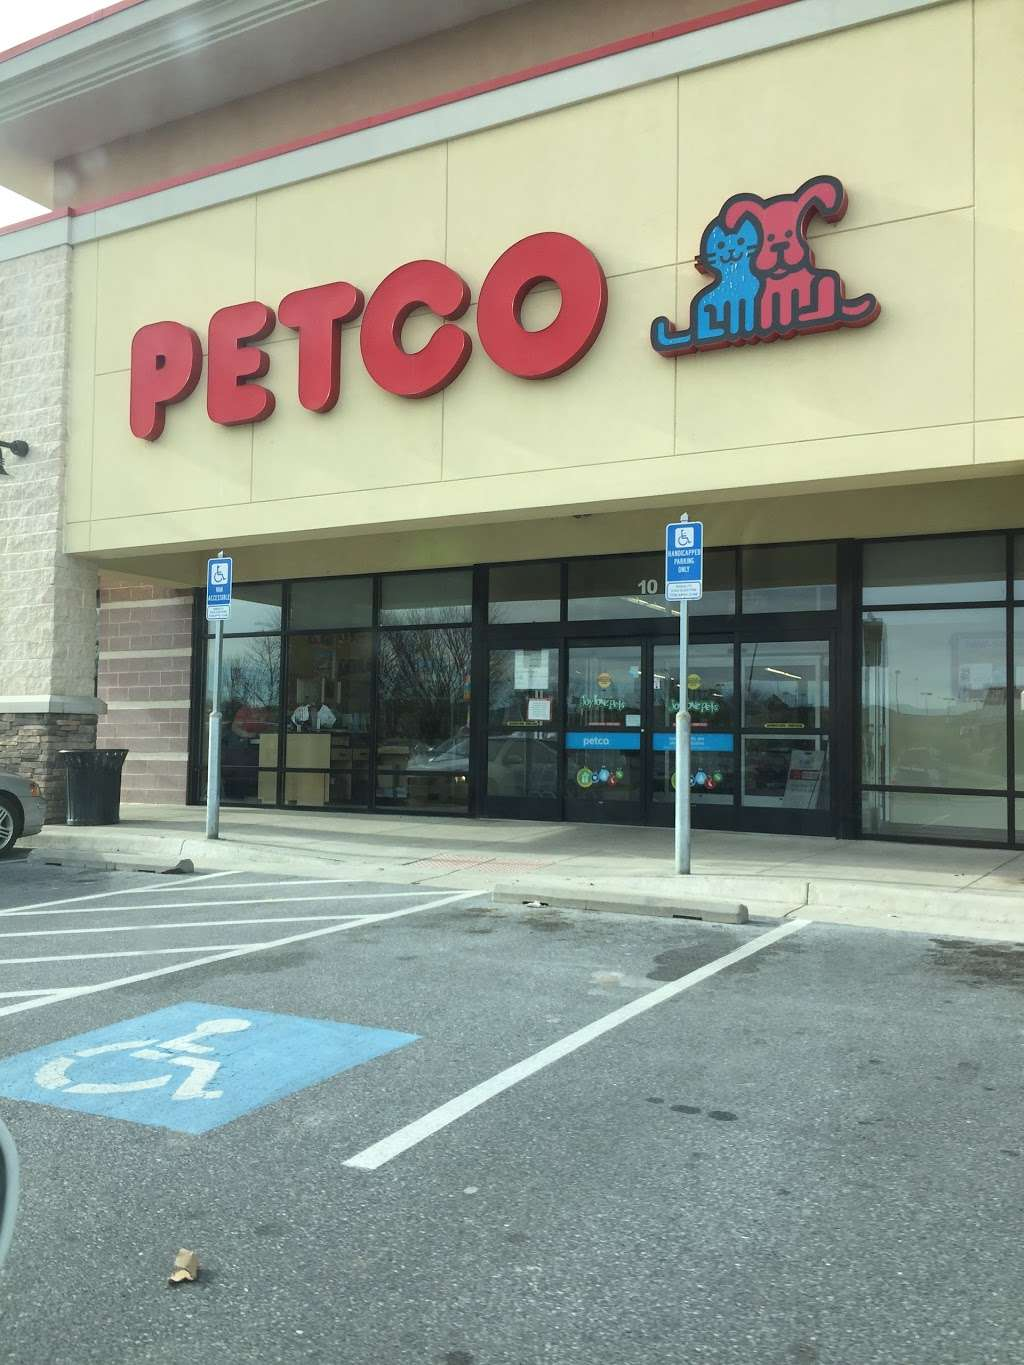 Petco - store  | Photo 5 of 10 | Address: 135 Crooked Run Plaza, Front Royal, VA 22630, USA | Phone: (540) 635-7606